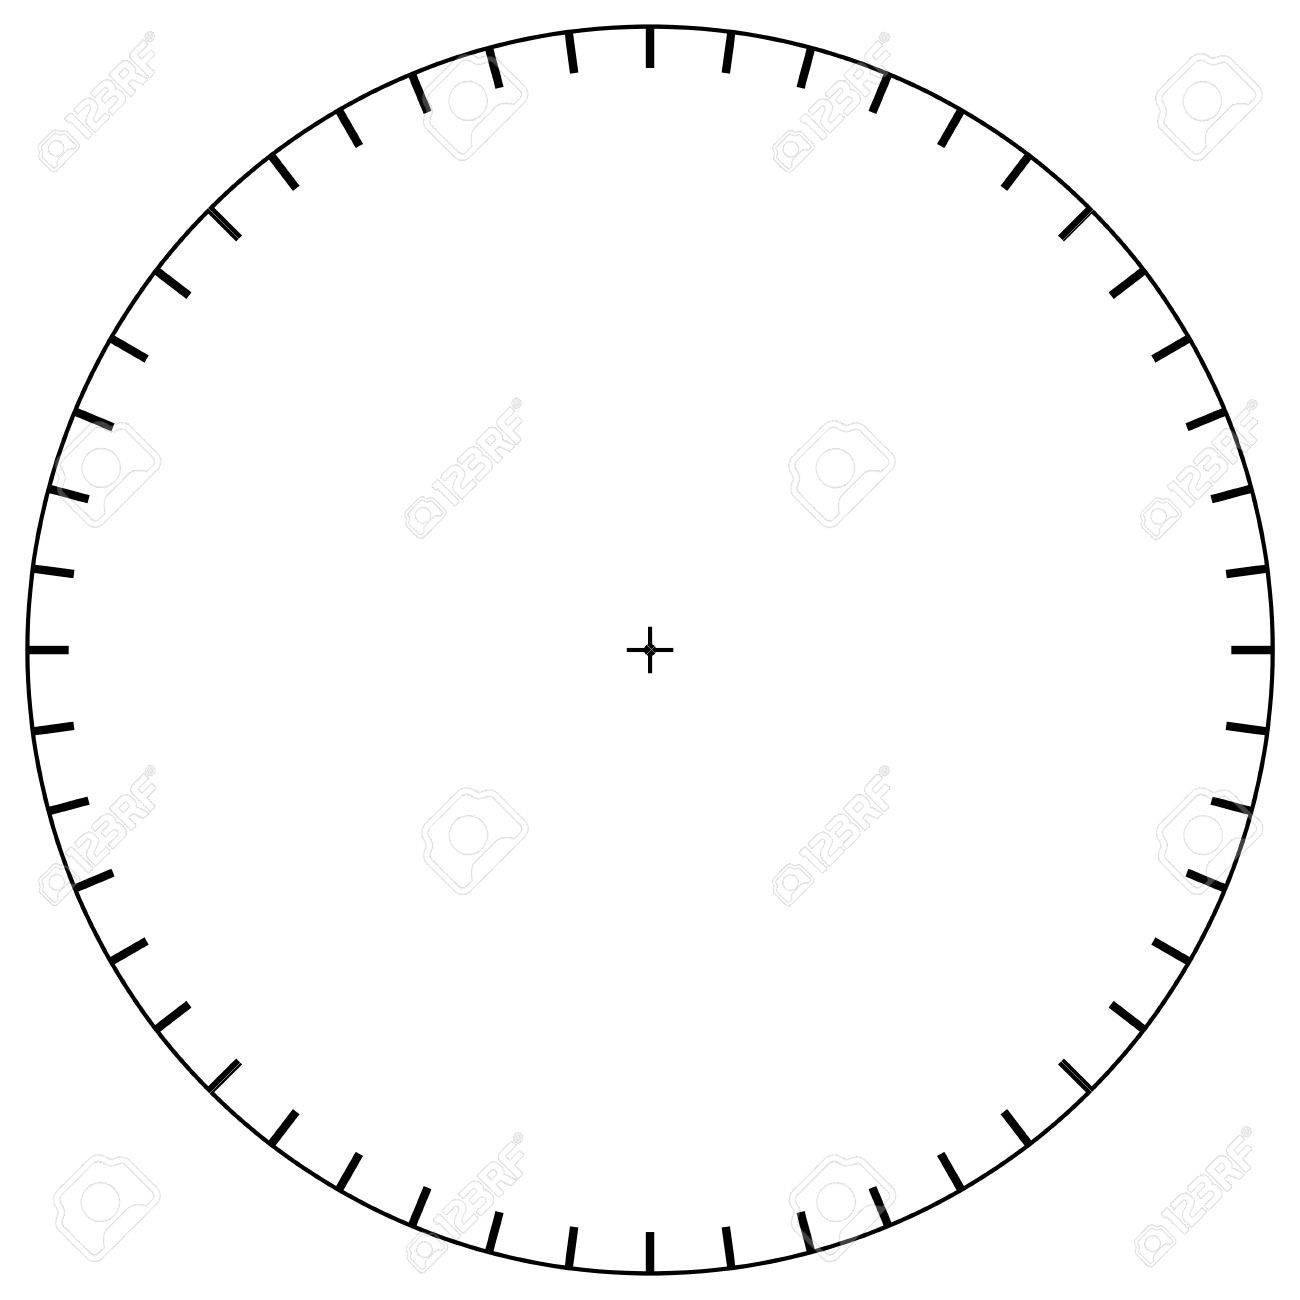 Blank Polar Graph Paper – Protractor – Pie Chart Vector Royalty Free - Free Printable Pie Chart